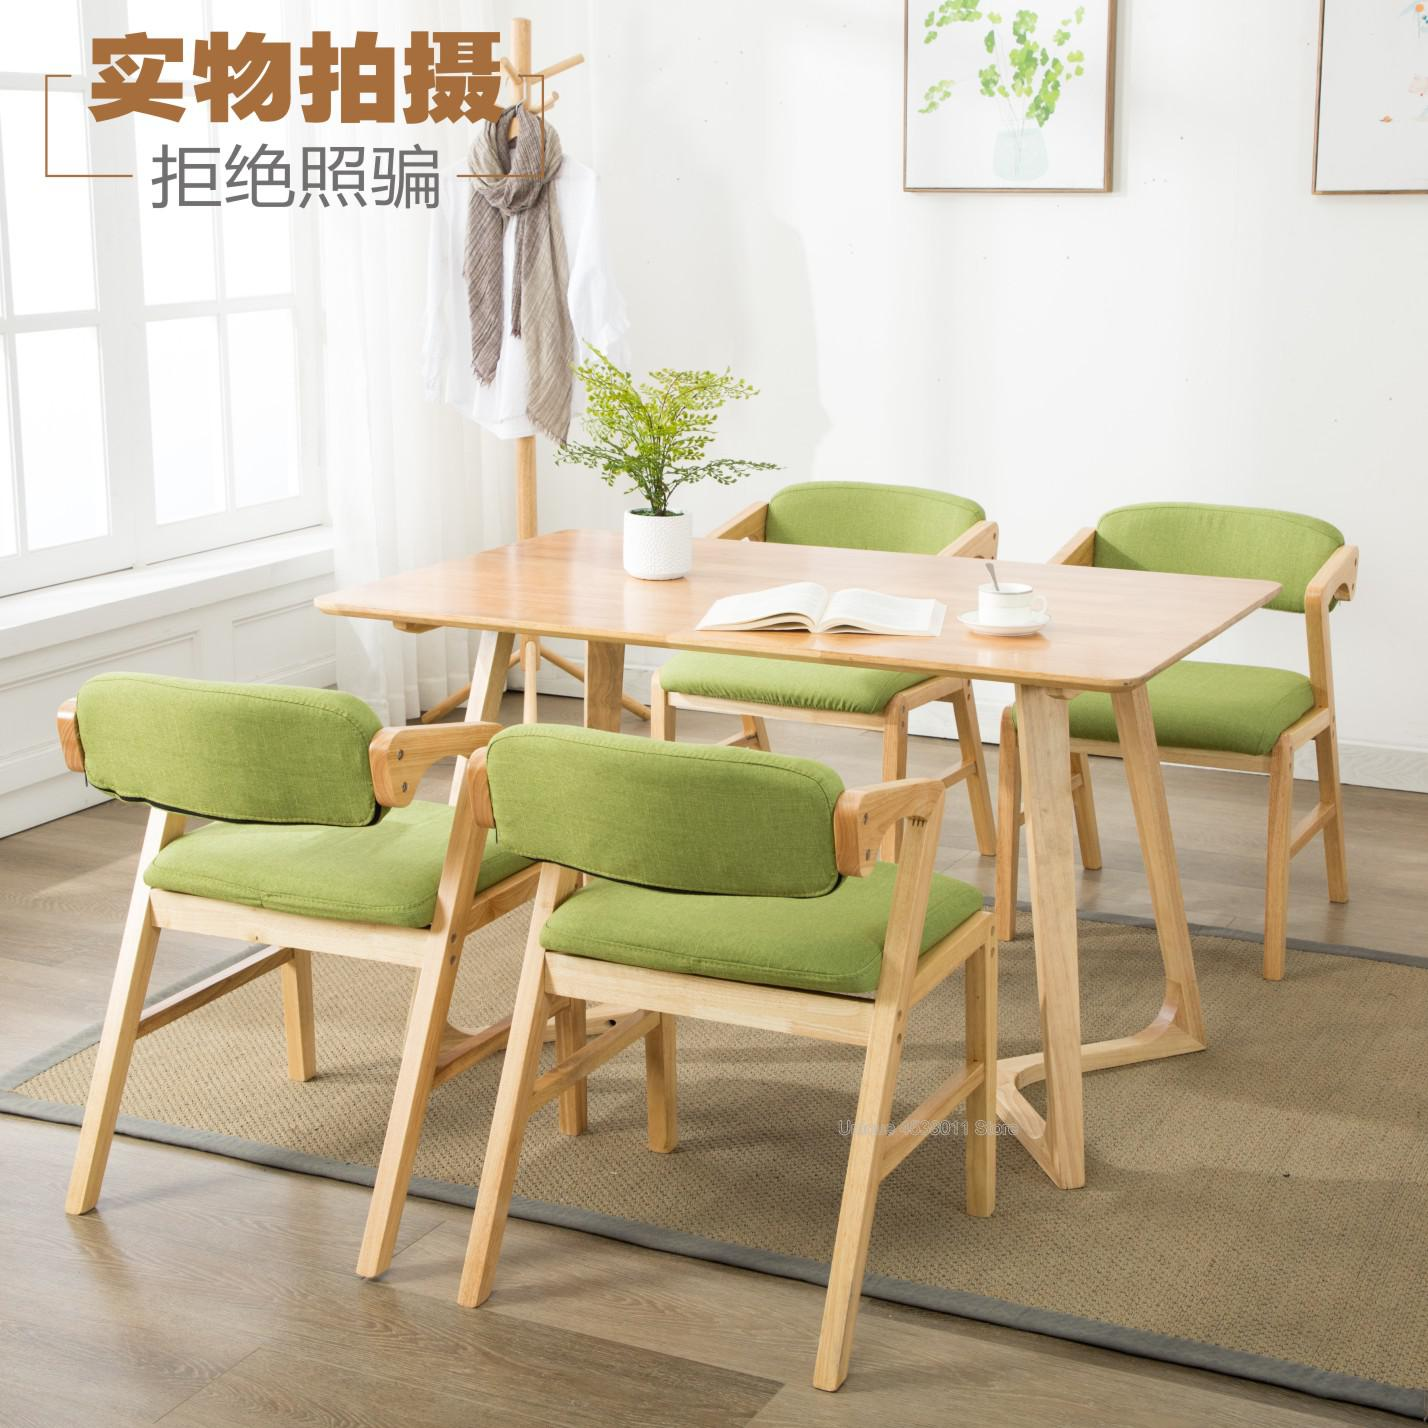 Us 107 3 17 Off Solid Wood Chair Nordic Dining Chair Simple Old Armchair Retro Hotel Study Computer Chair Lounge Chair In Dining Chairs From